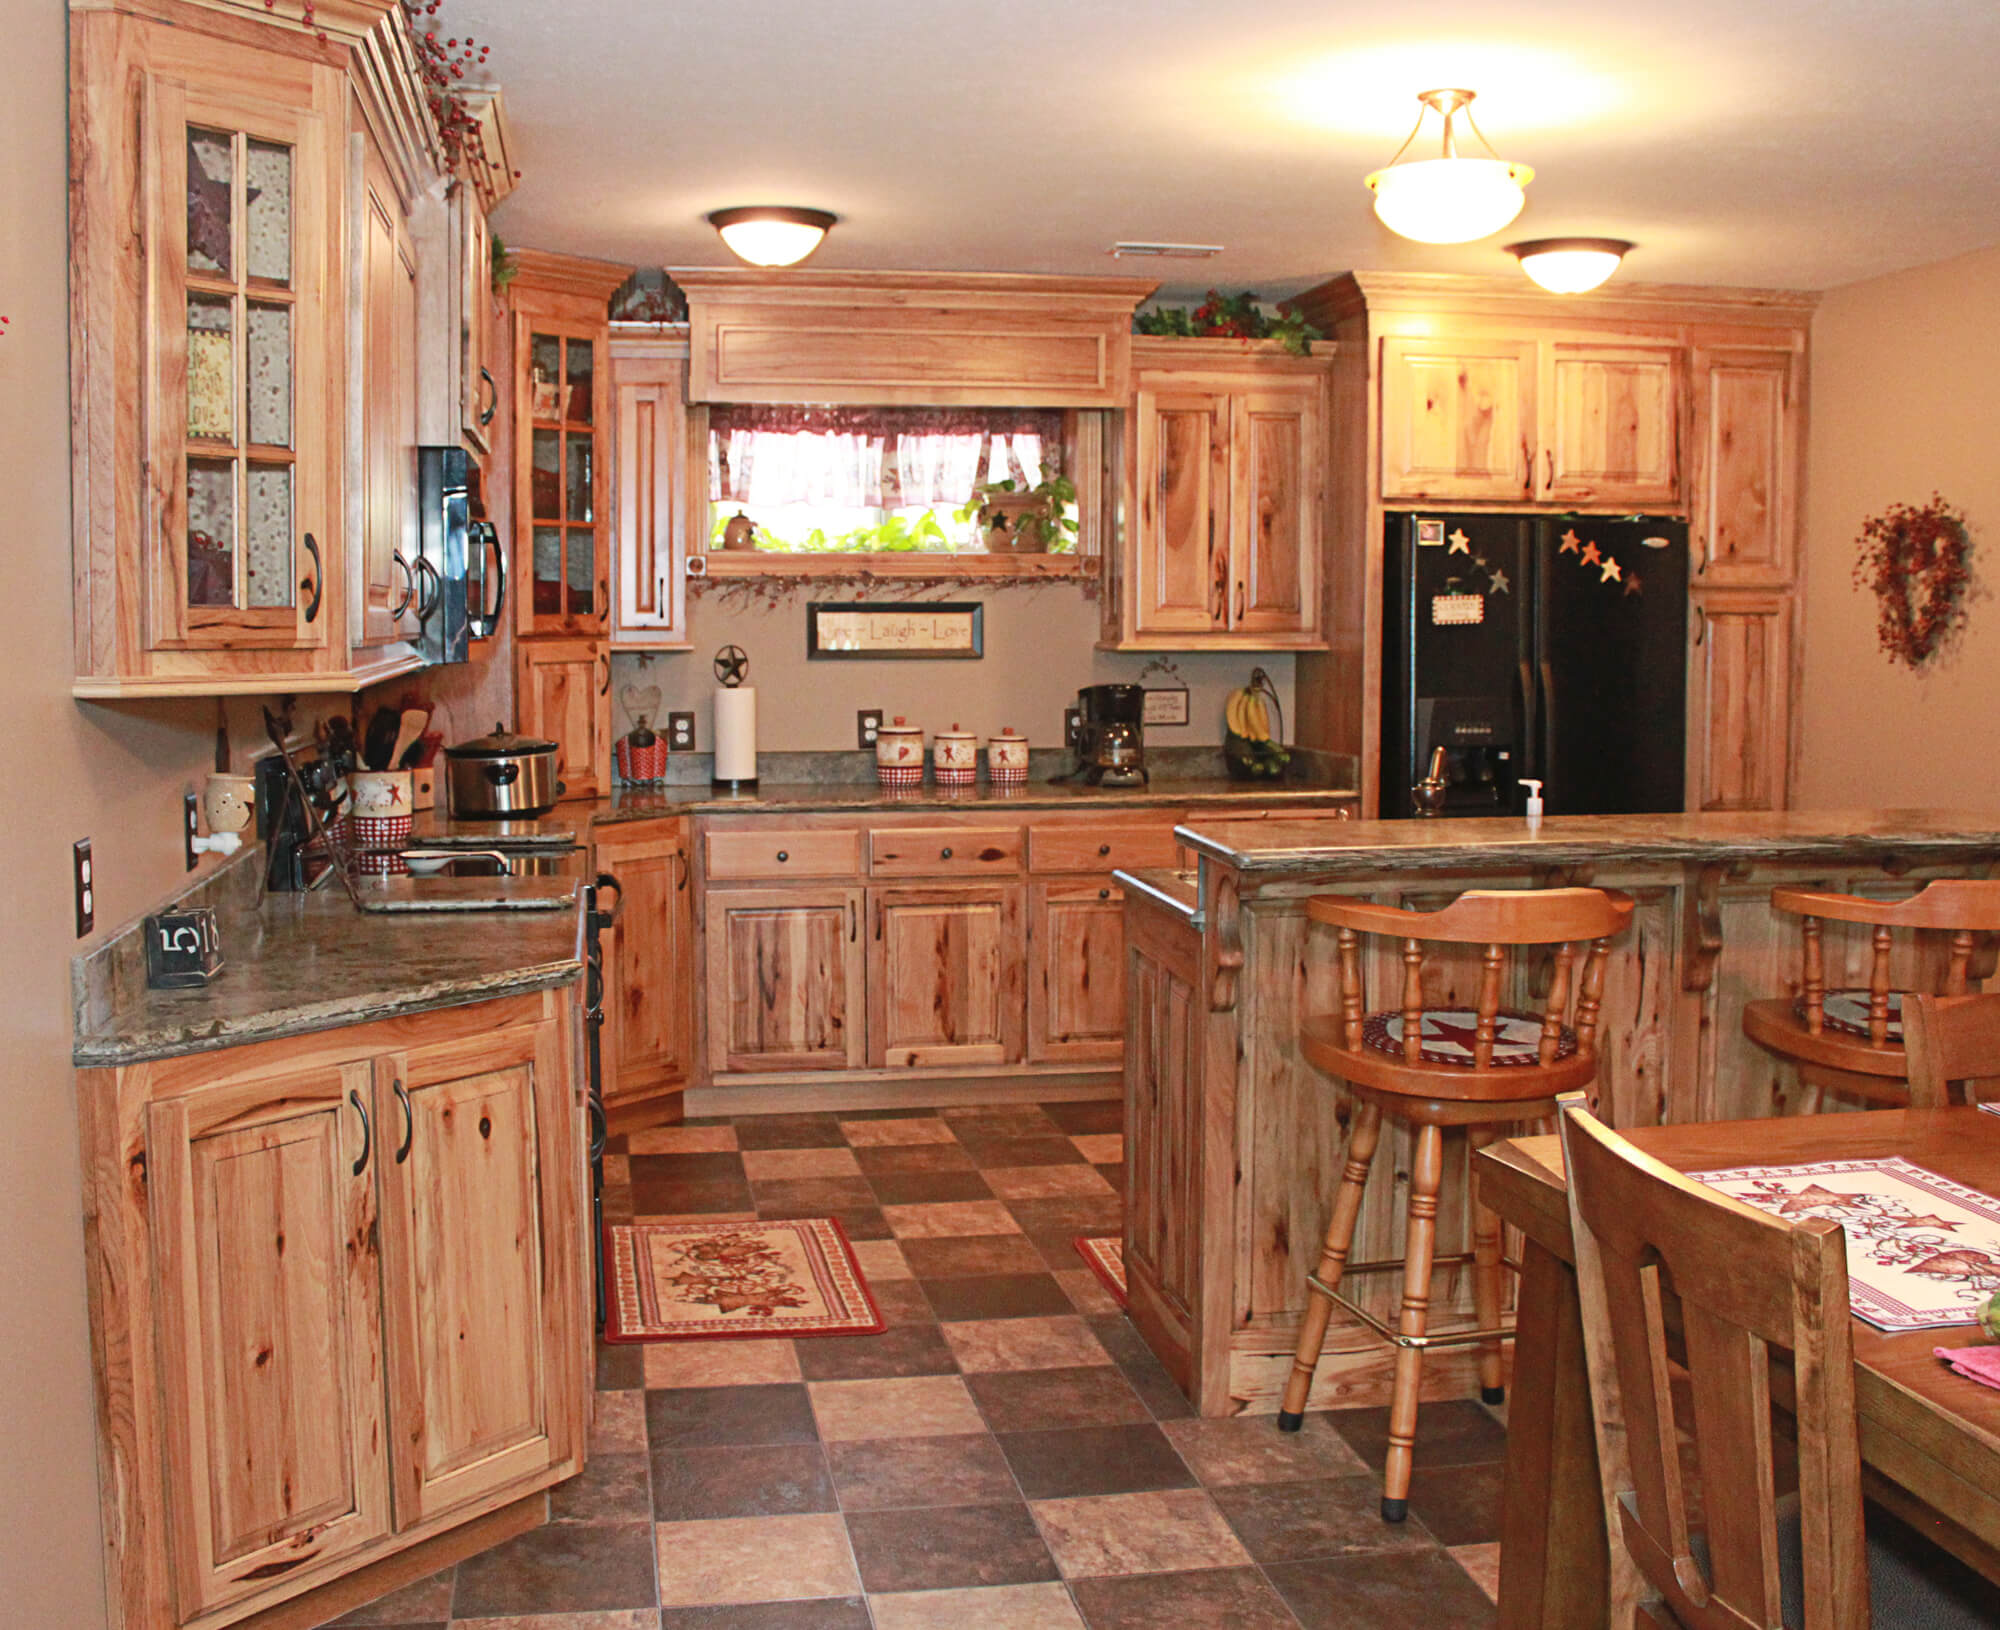 The cabinets plus rustic hickory kitchen cabinets for The kitchen cupboard